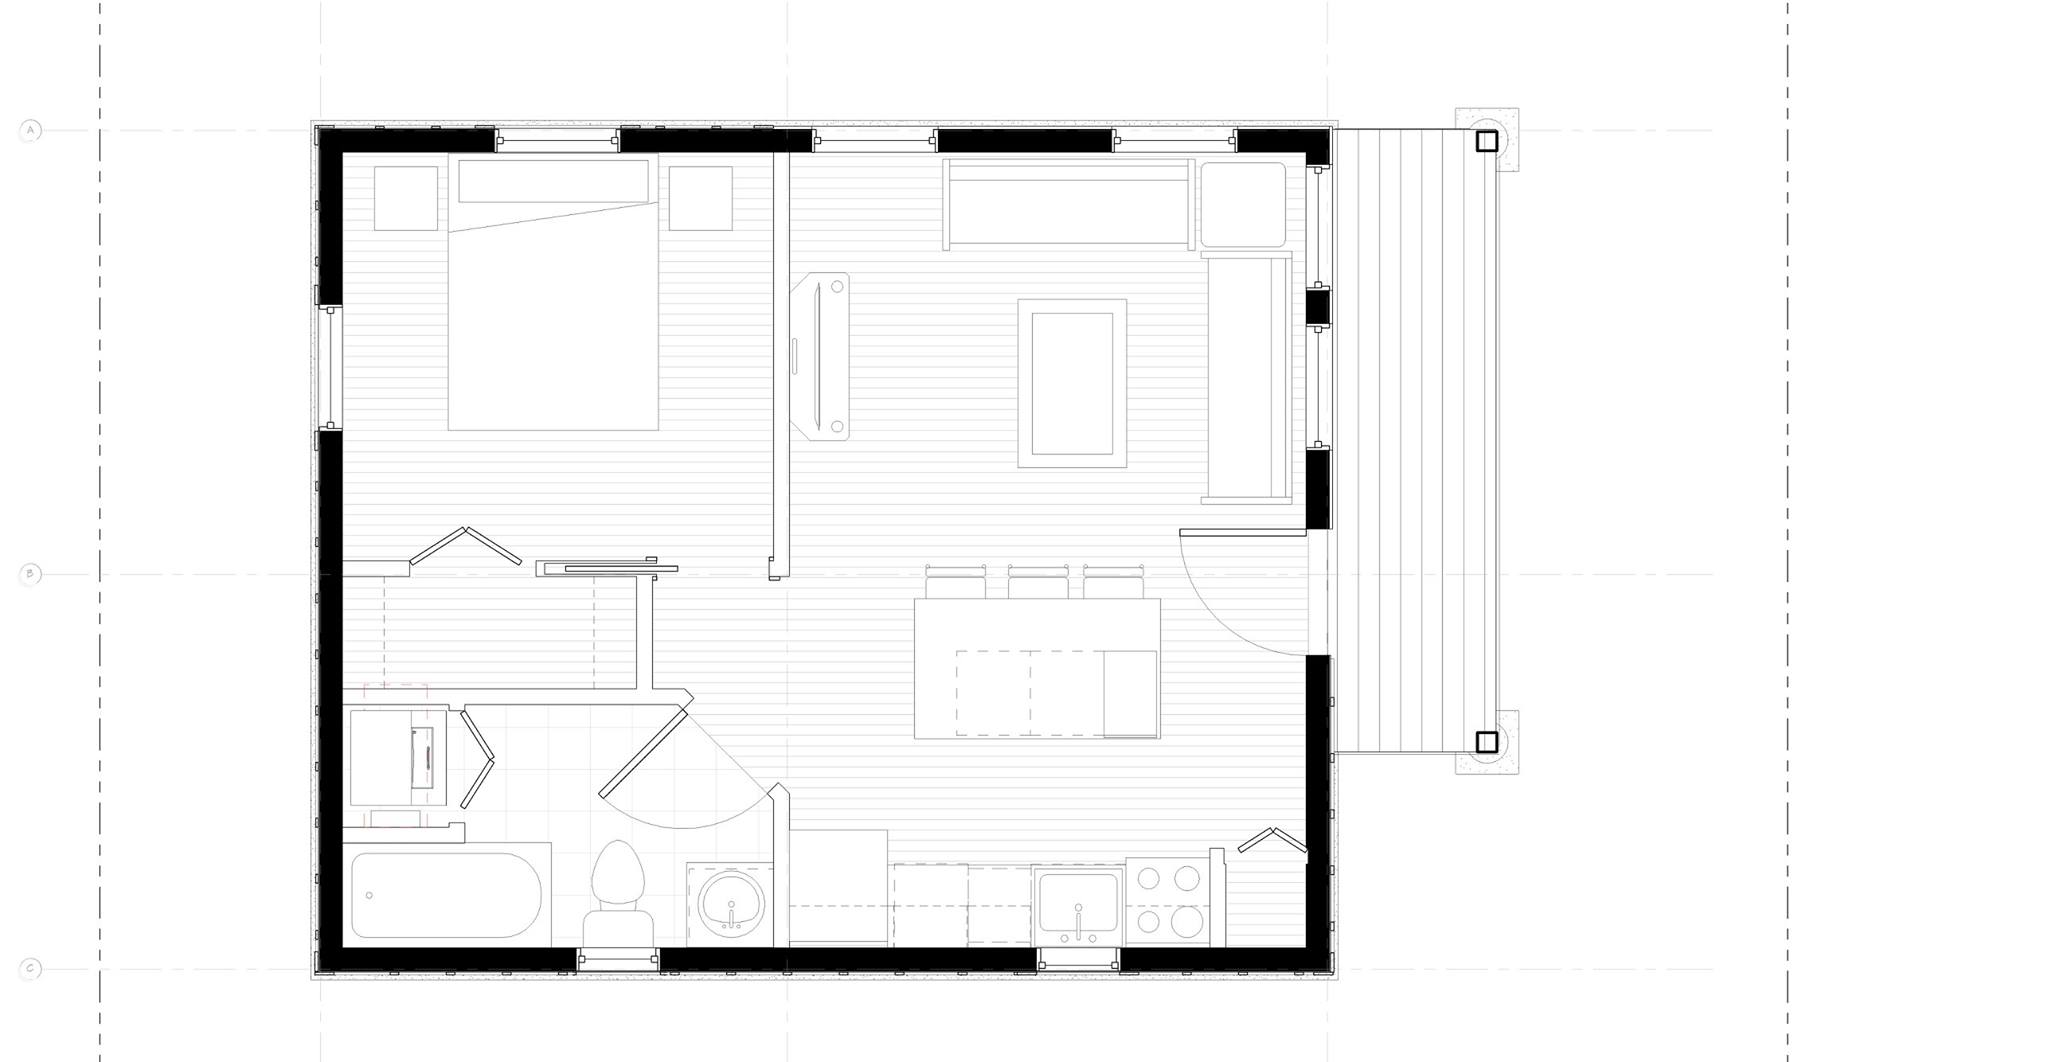 Southside flat jl design build for Accessory dwelling unit plans